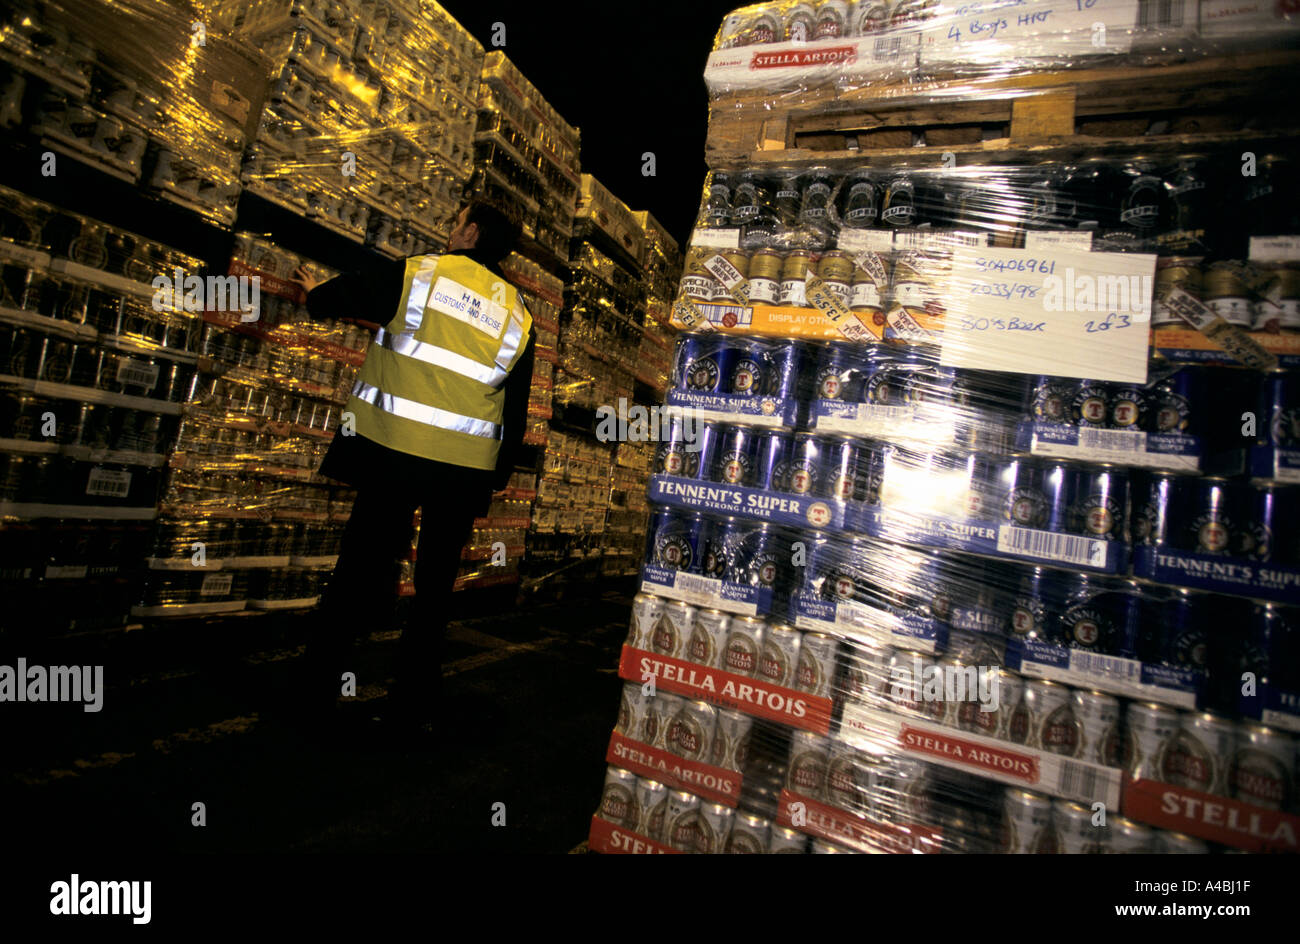 Quantities of canned beer confiscated by UK Customs and Excise officers at Dover port from people trying to smuggle. - Stock Image